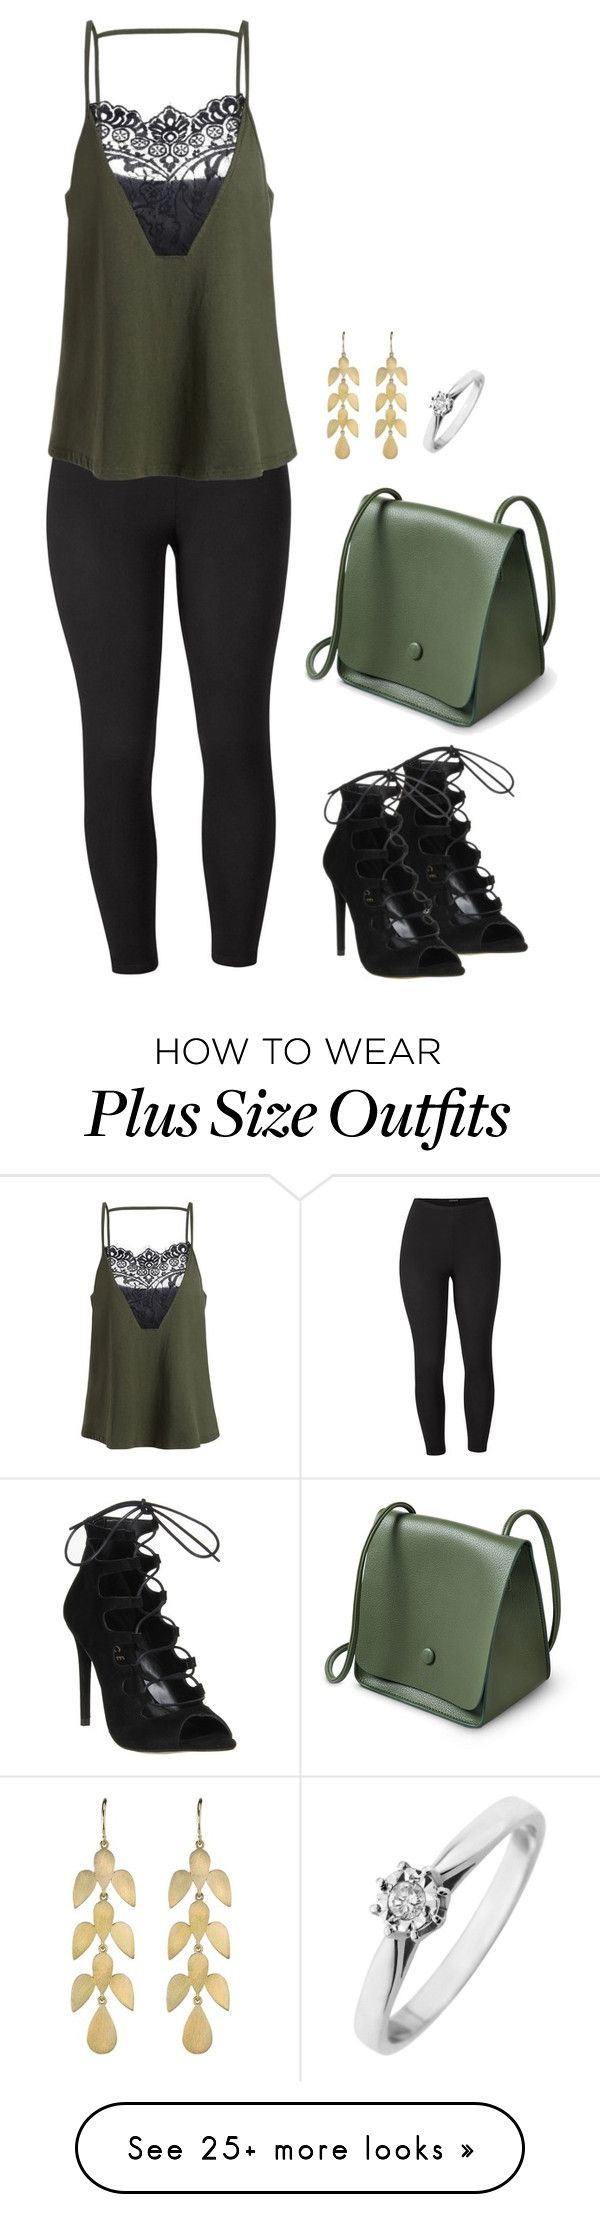 """Untitled #309"" by alibasicelma on Polyvore featuring Venus, Office, Irene Neuwirth and plus size clothing"